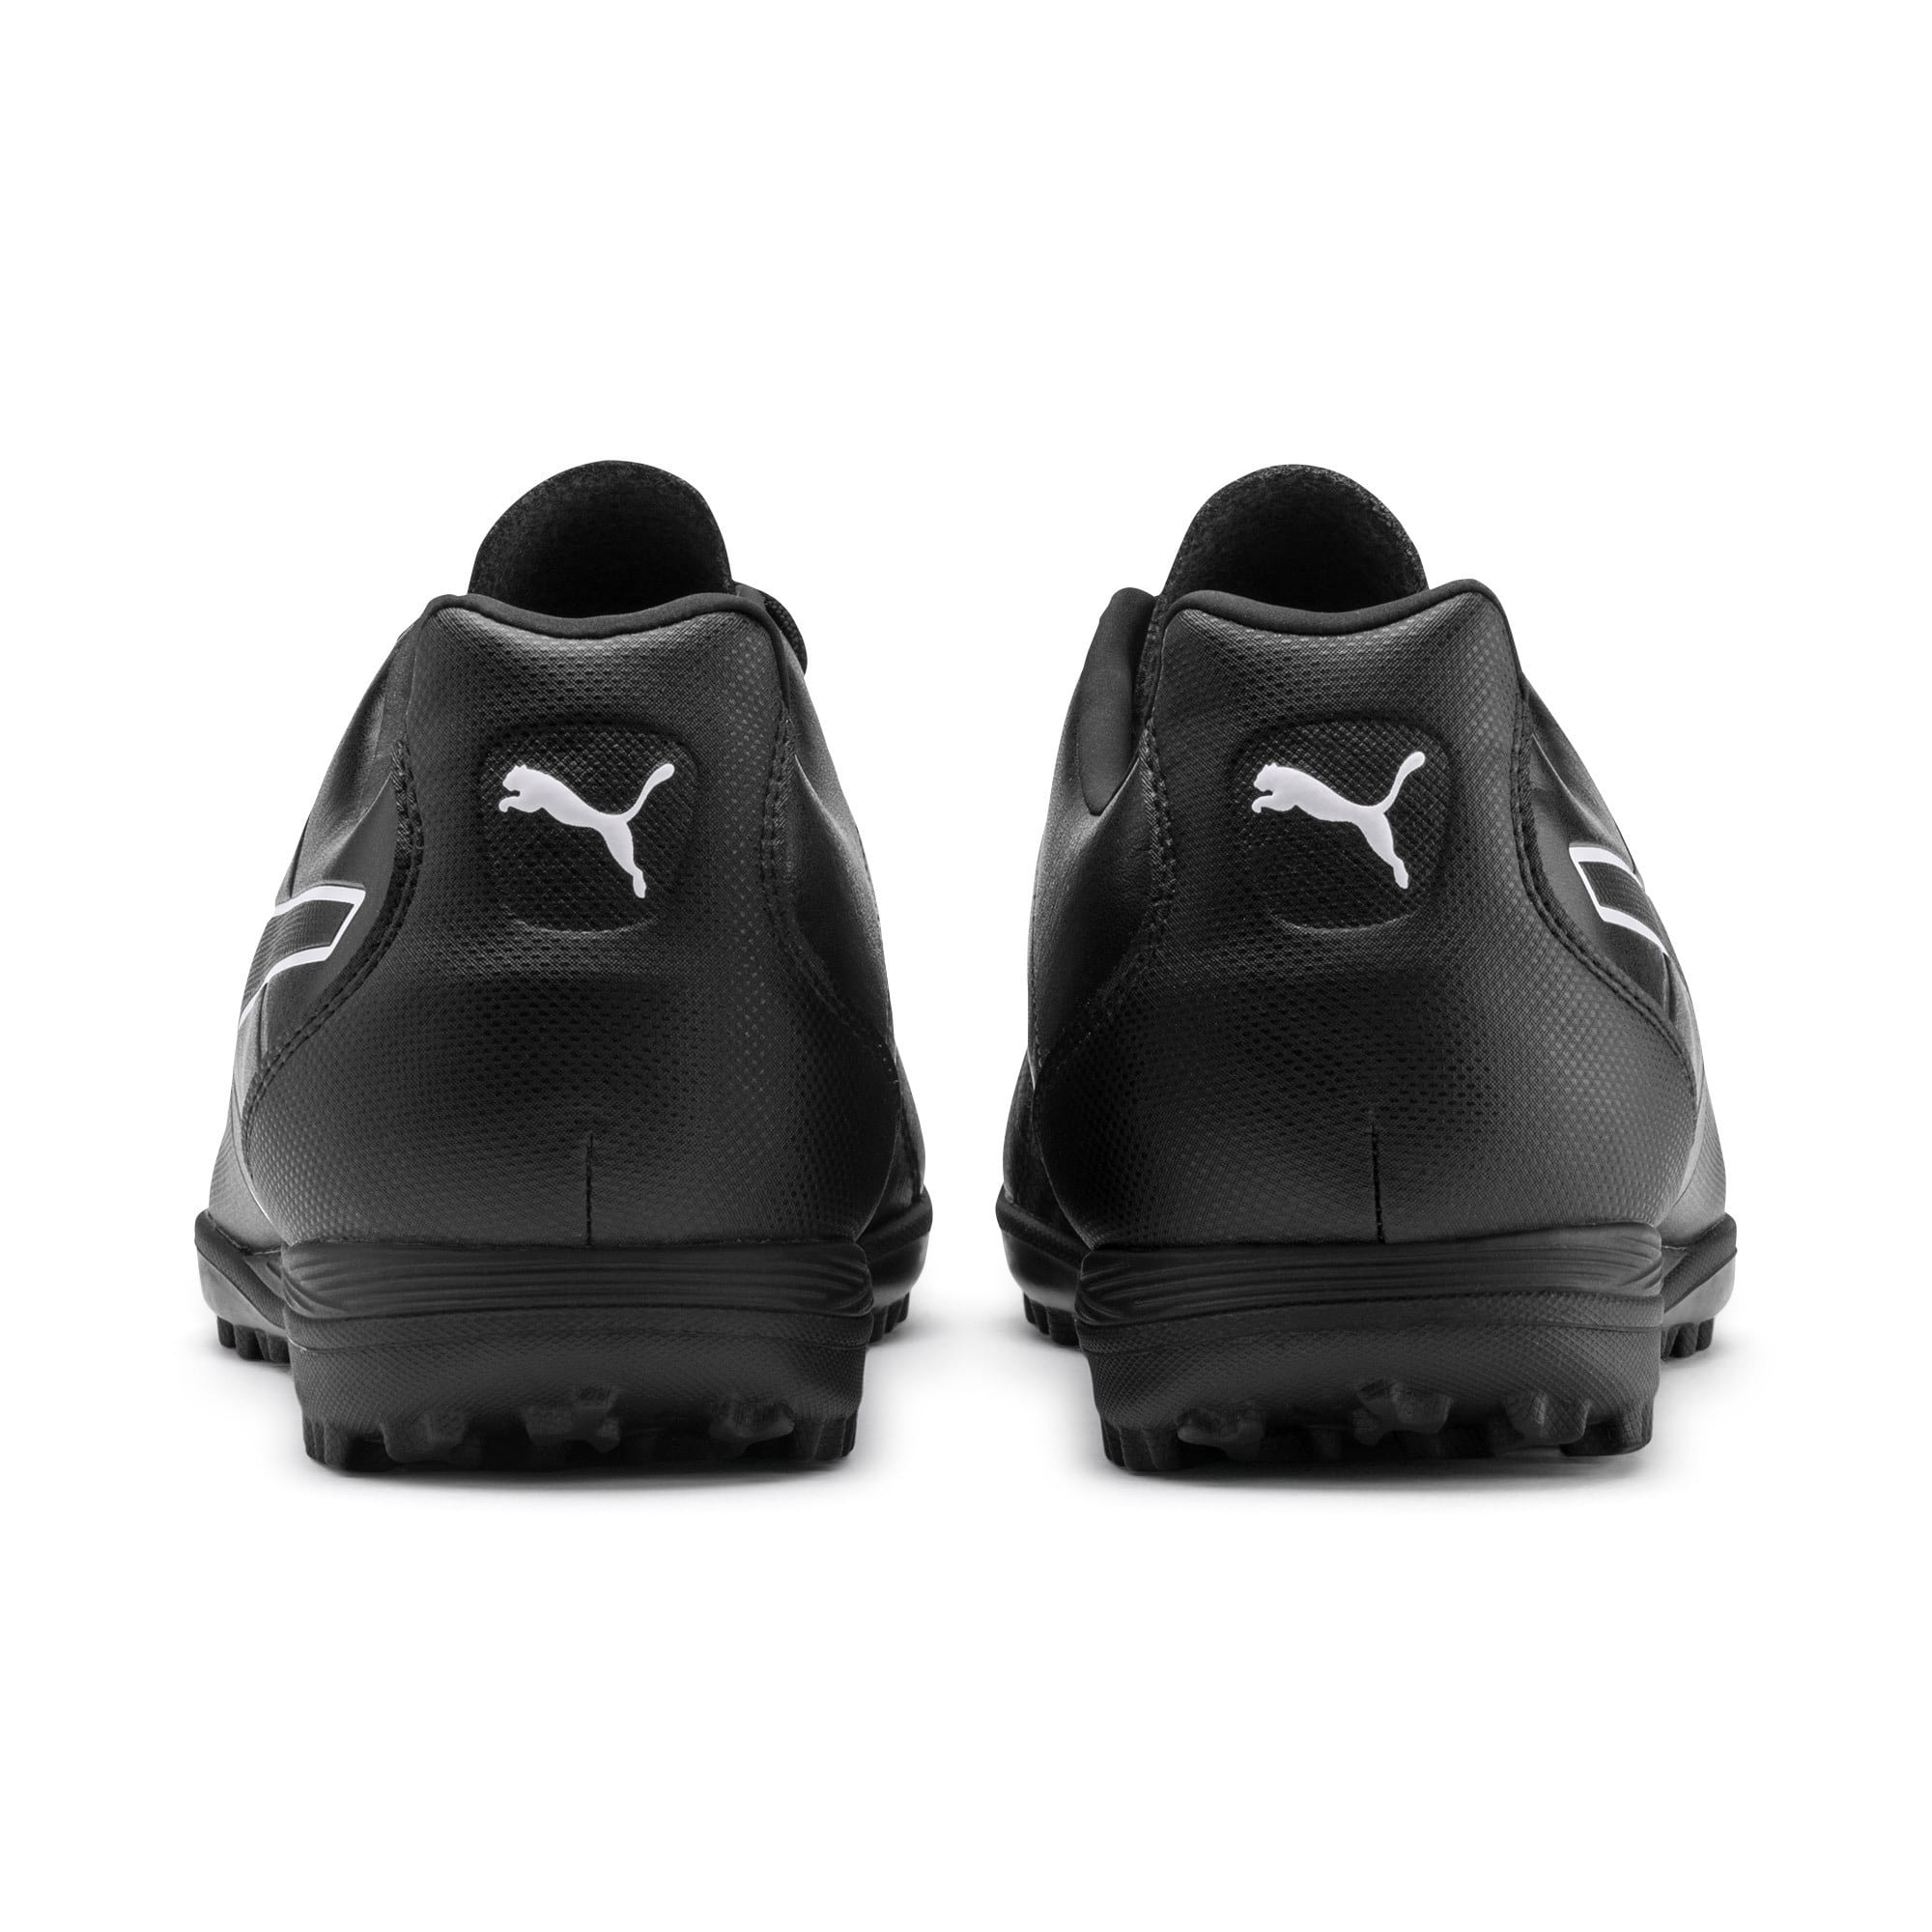 Thumbnail 5 of KING Hero TT Football Boots, Puma Black-Puma White, medium-IND